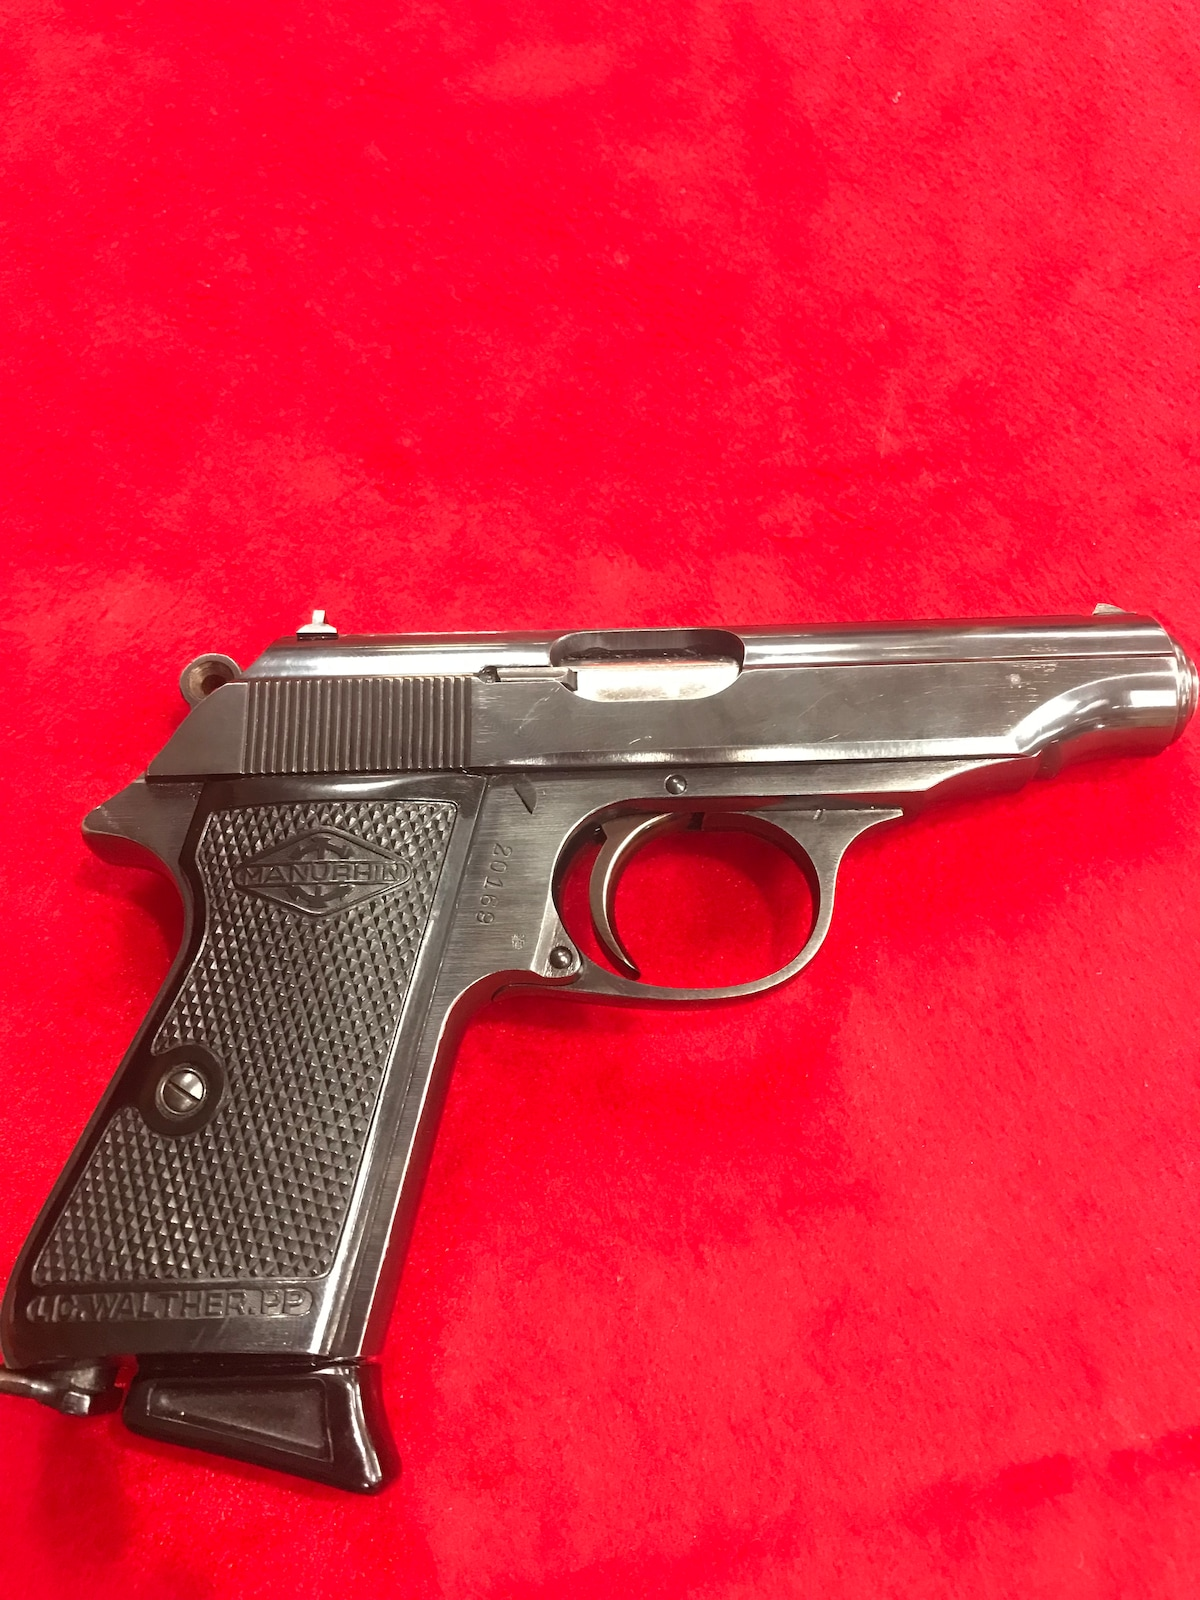 WALTHER, FRENCH-MADE BY MANURHIN pp